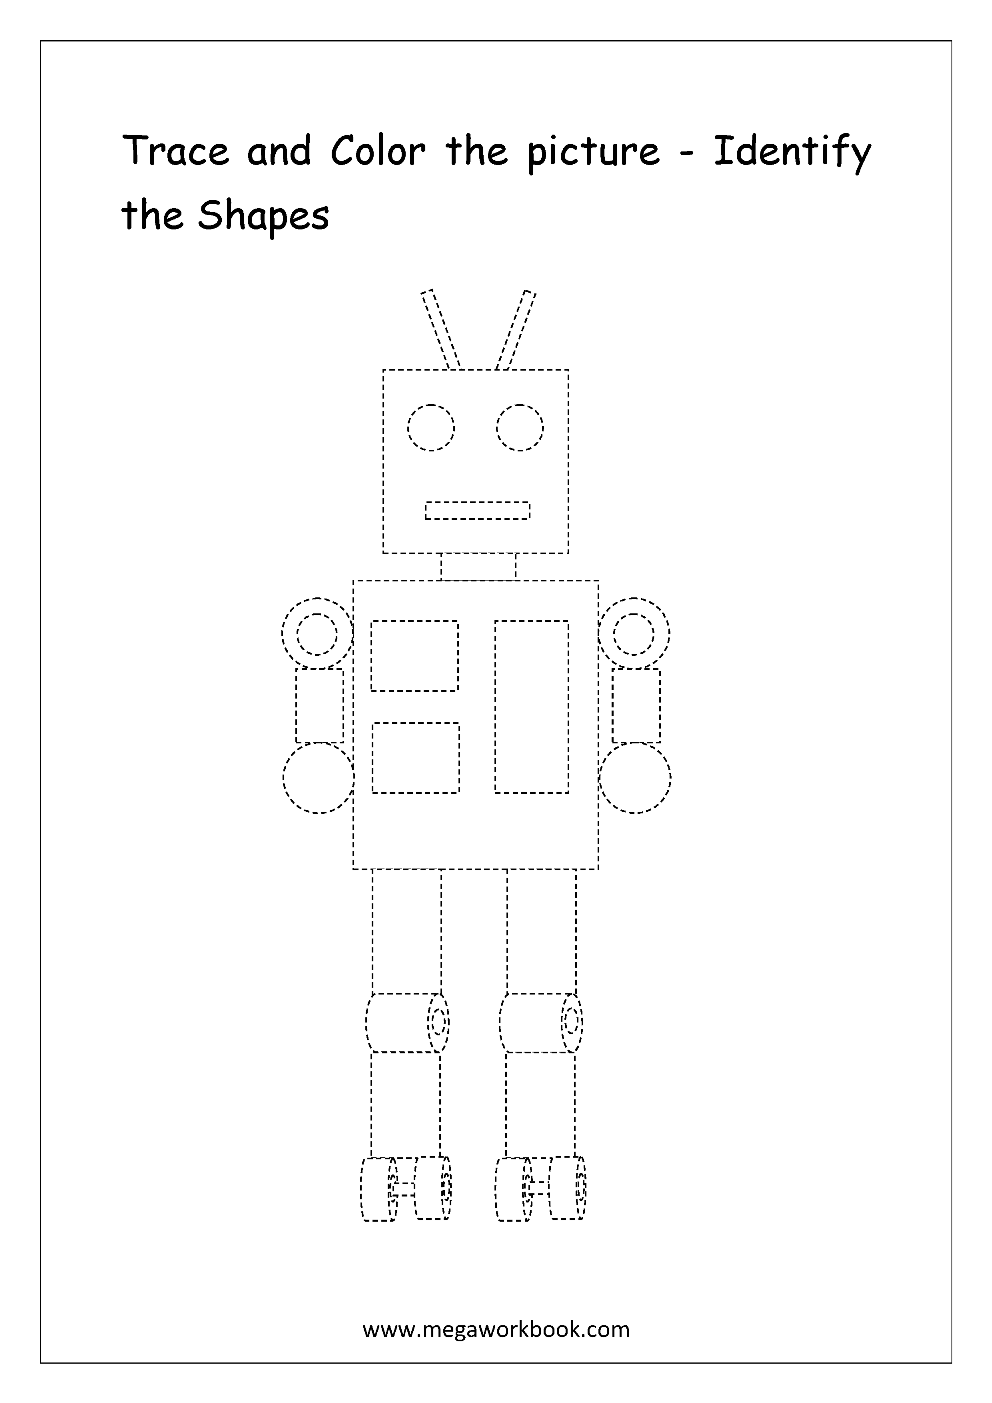 Coloring Sheet Monkey furthermore Tracing Coloring Pages Spring Page also Ce E E D Ccdb A F Free Worksheets In Spanish additionally Christmas Angel Coloring Pages likewise Letter Tracing Porcupine. on tracing shapes worksheets